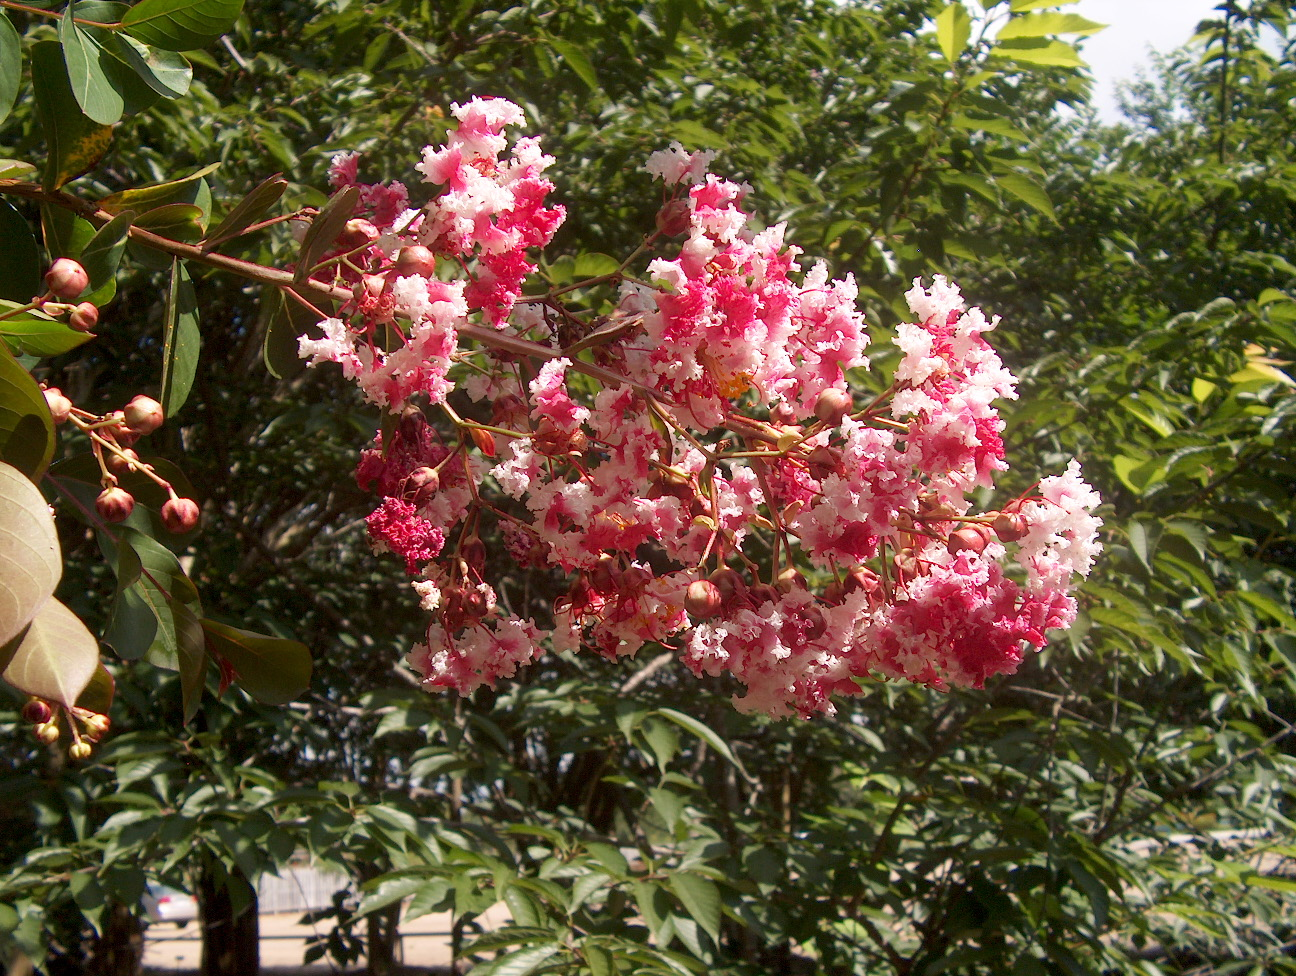 Lagerstroemia indica 'Prairie Lace' / Lagerstroemia indica 'Prairie Lace'